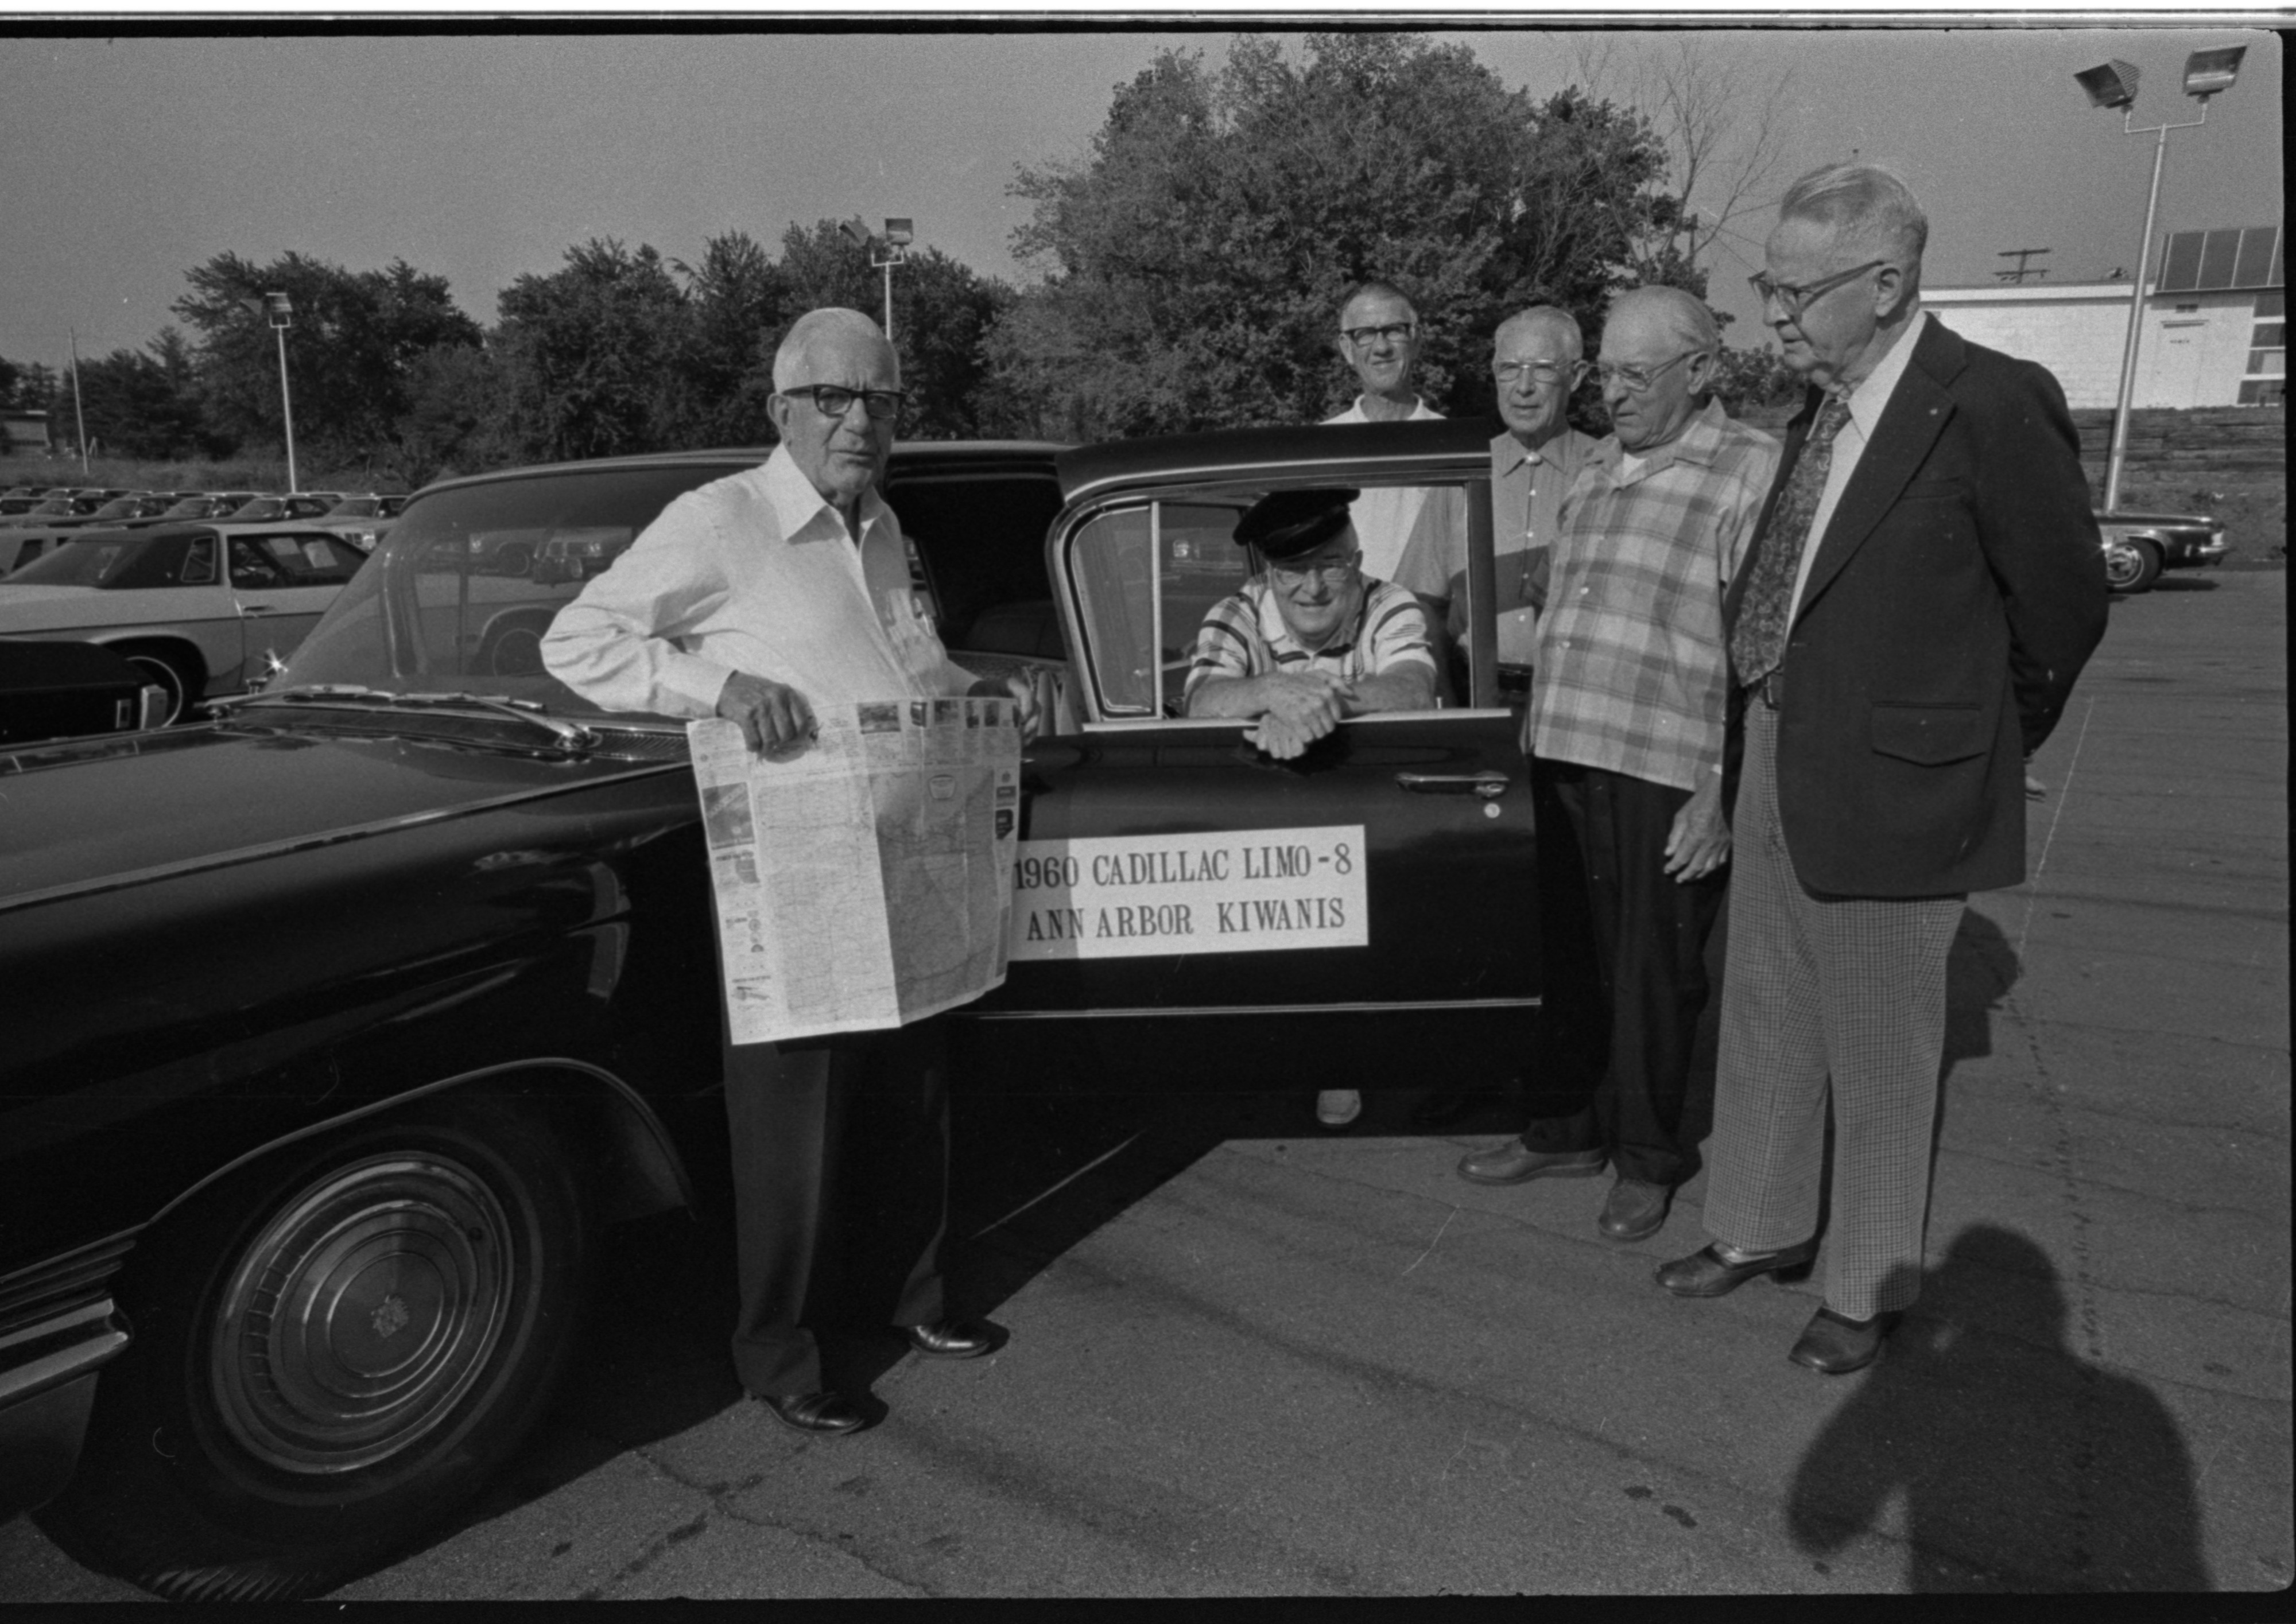 Kiwanis Club of Ann Arbor Members With Cadillac 'Limo,' August 1975 image